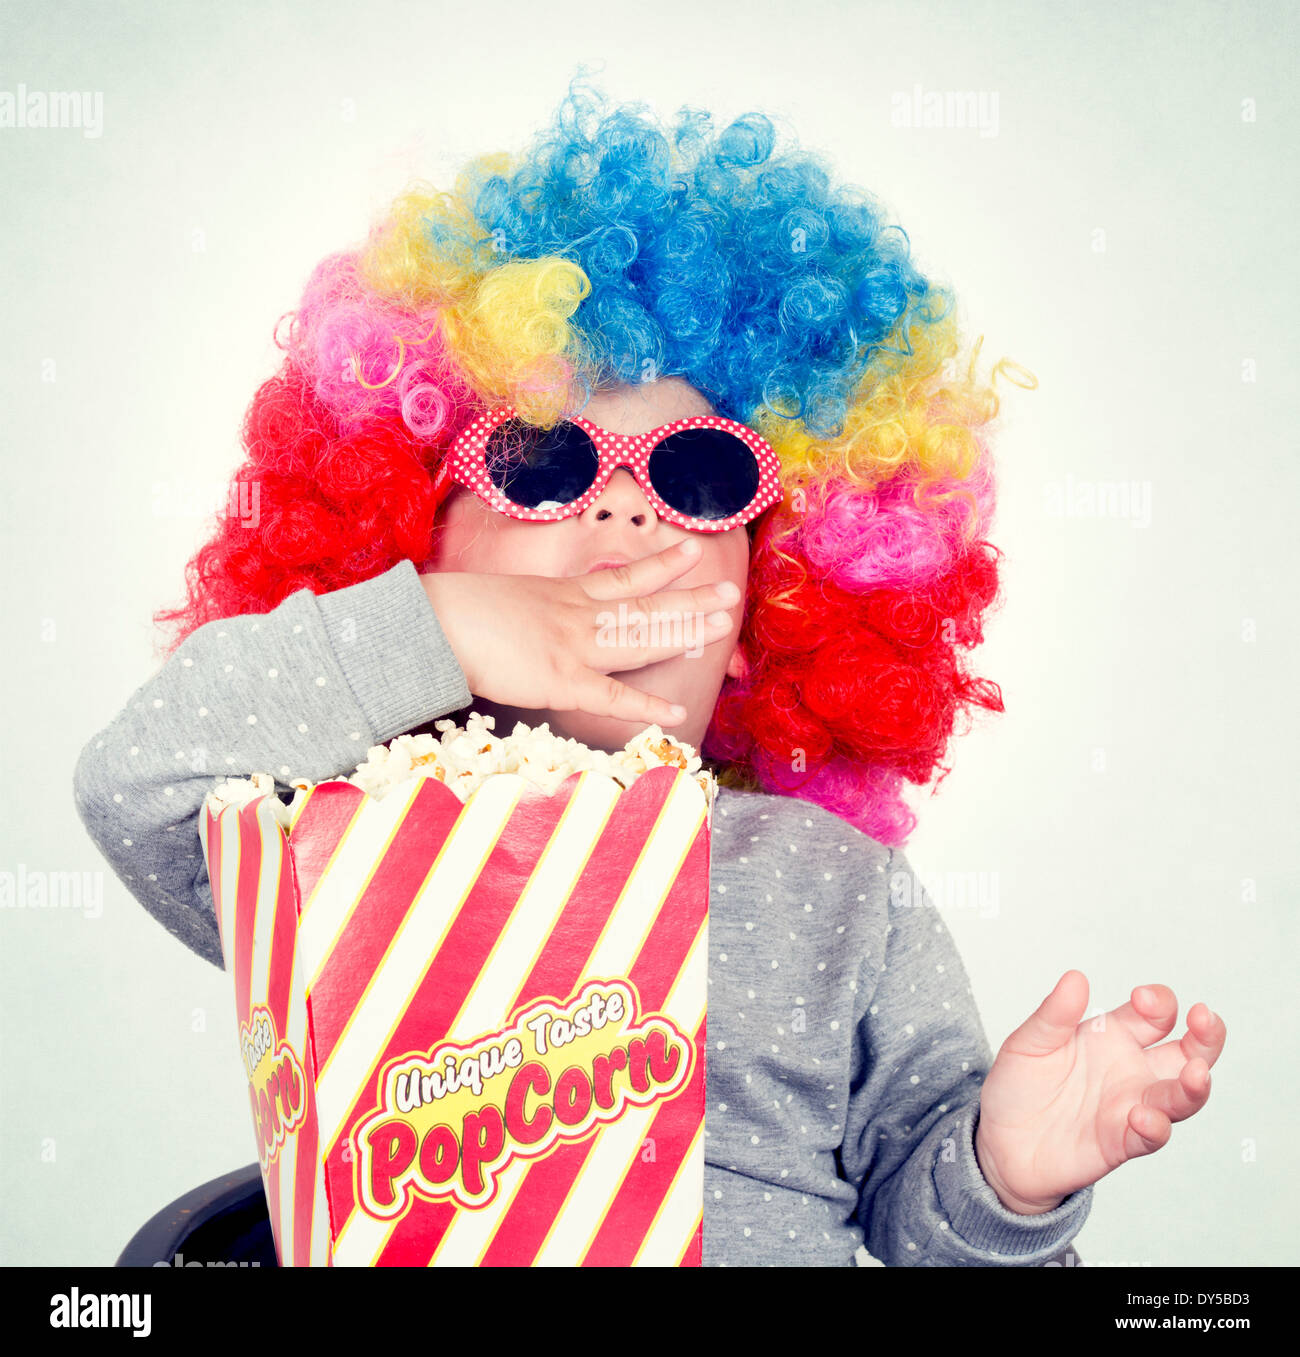 Child with clown wig and sunglasses eating pop corn - Stock Image